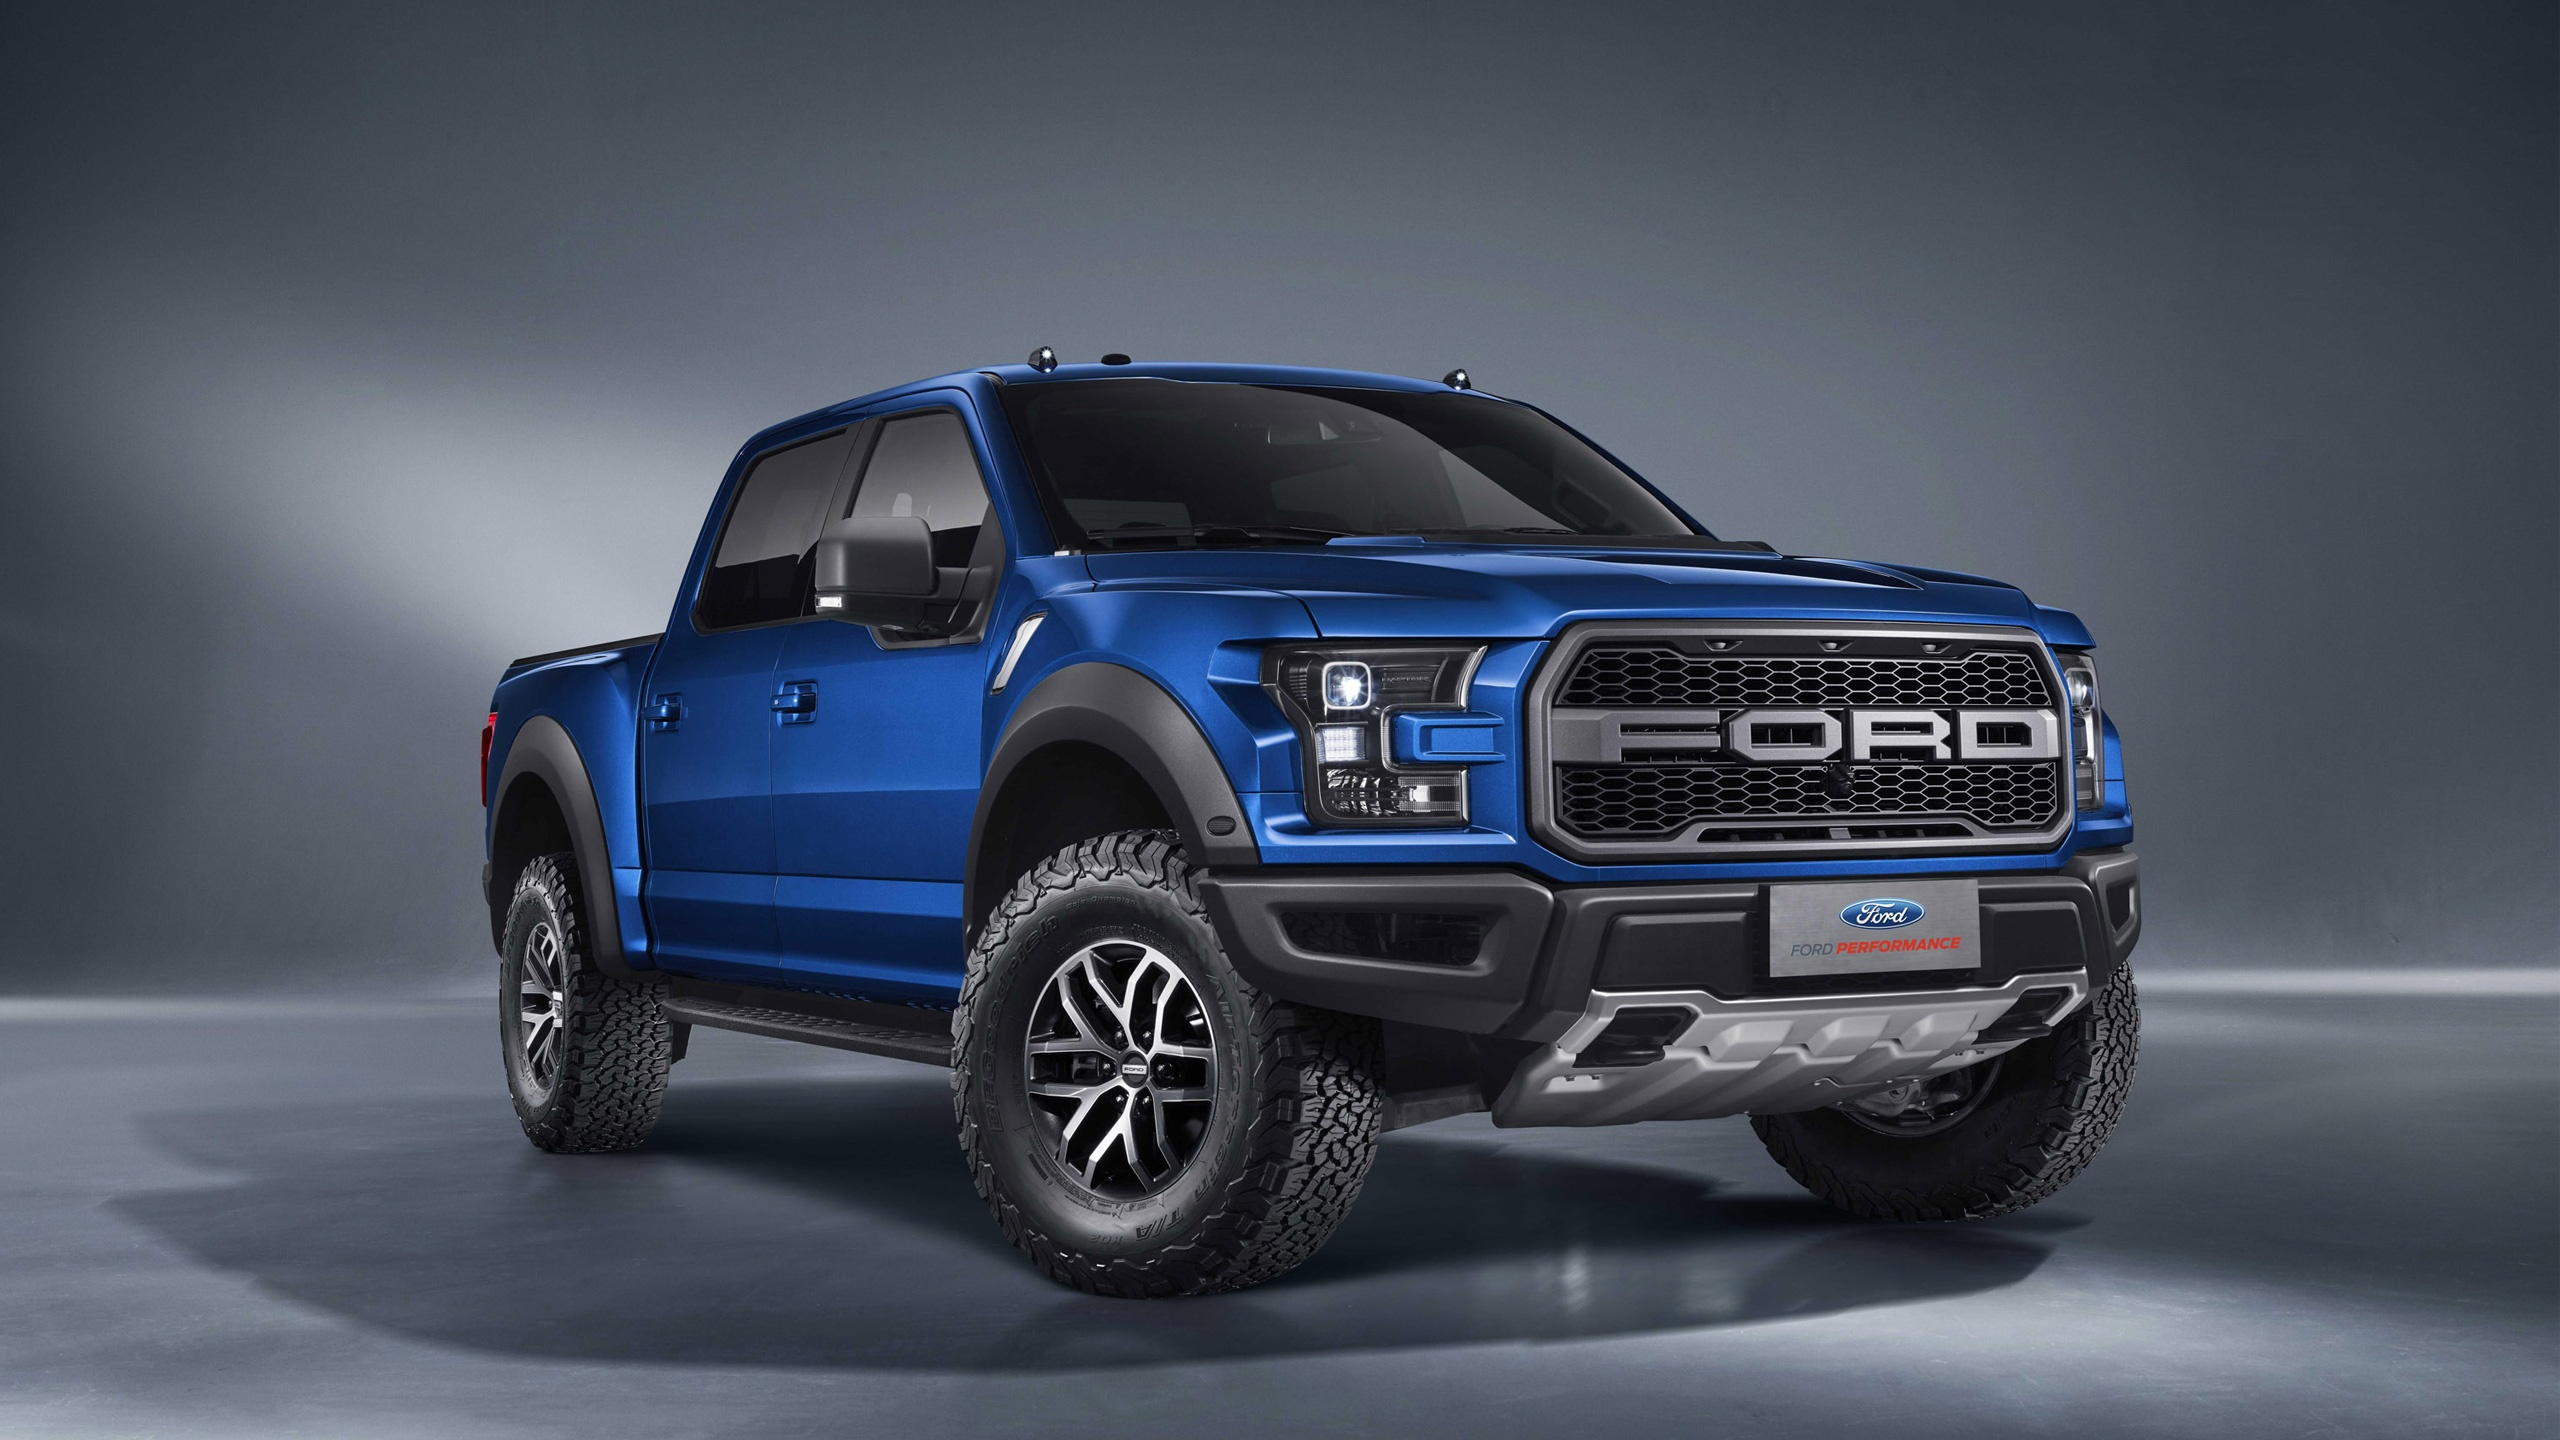 2017 Ford F 150 Raptor Supercrew Wallpapers HD Wallpapers 2560x1440